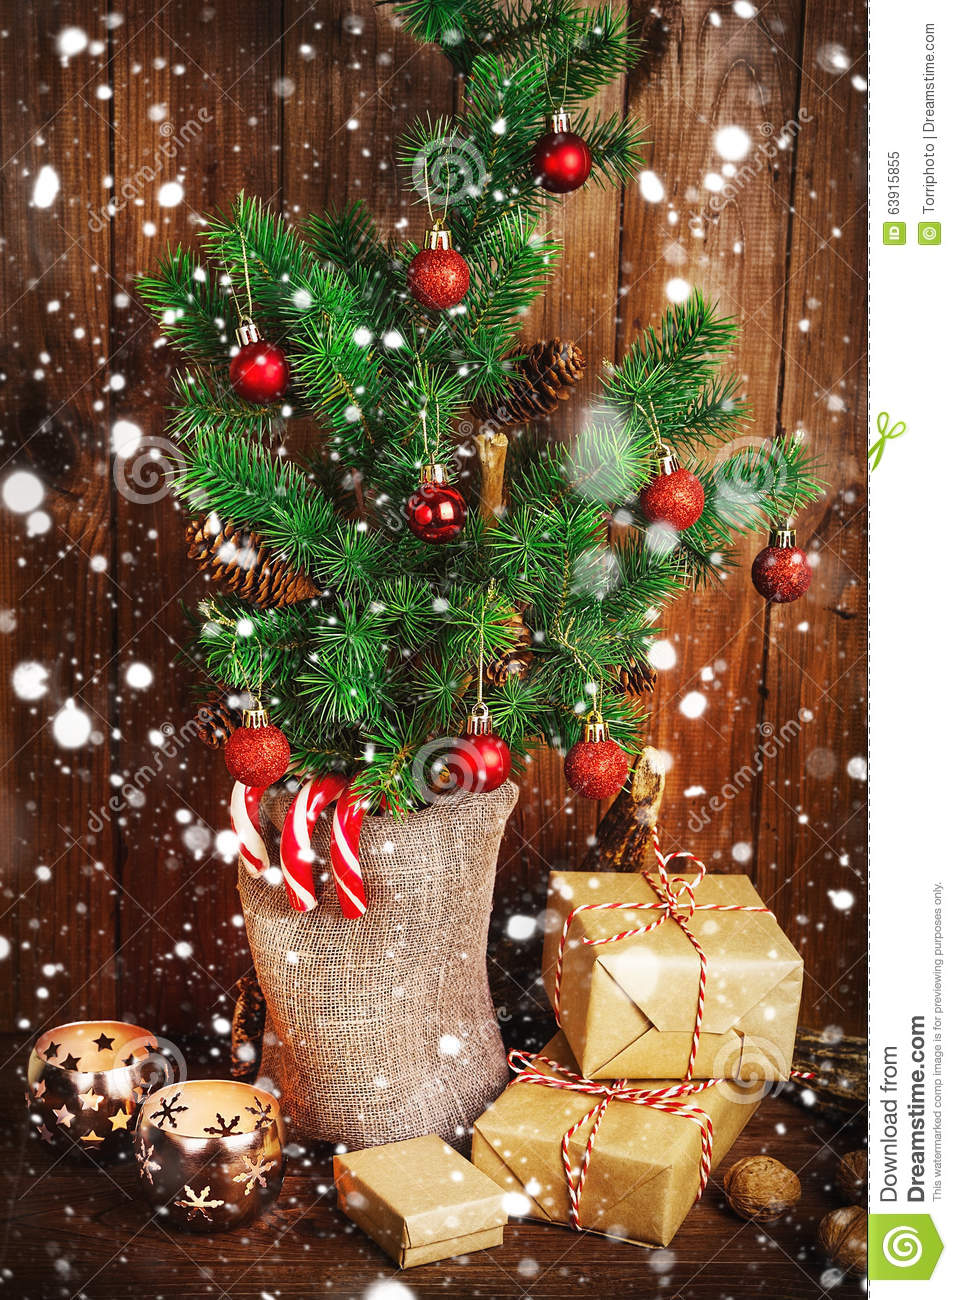 christmas tree and christmas decorations - Snowing Christmas Decoration